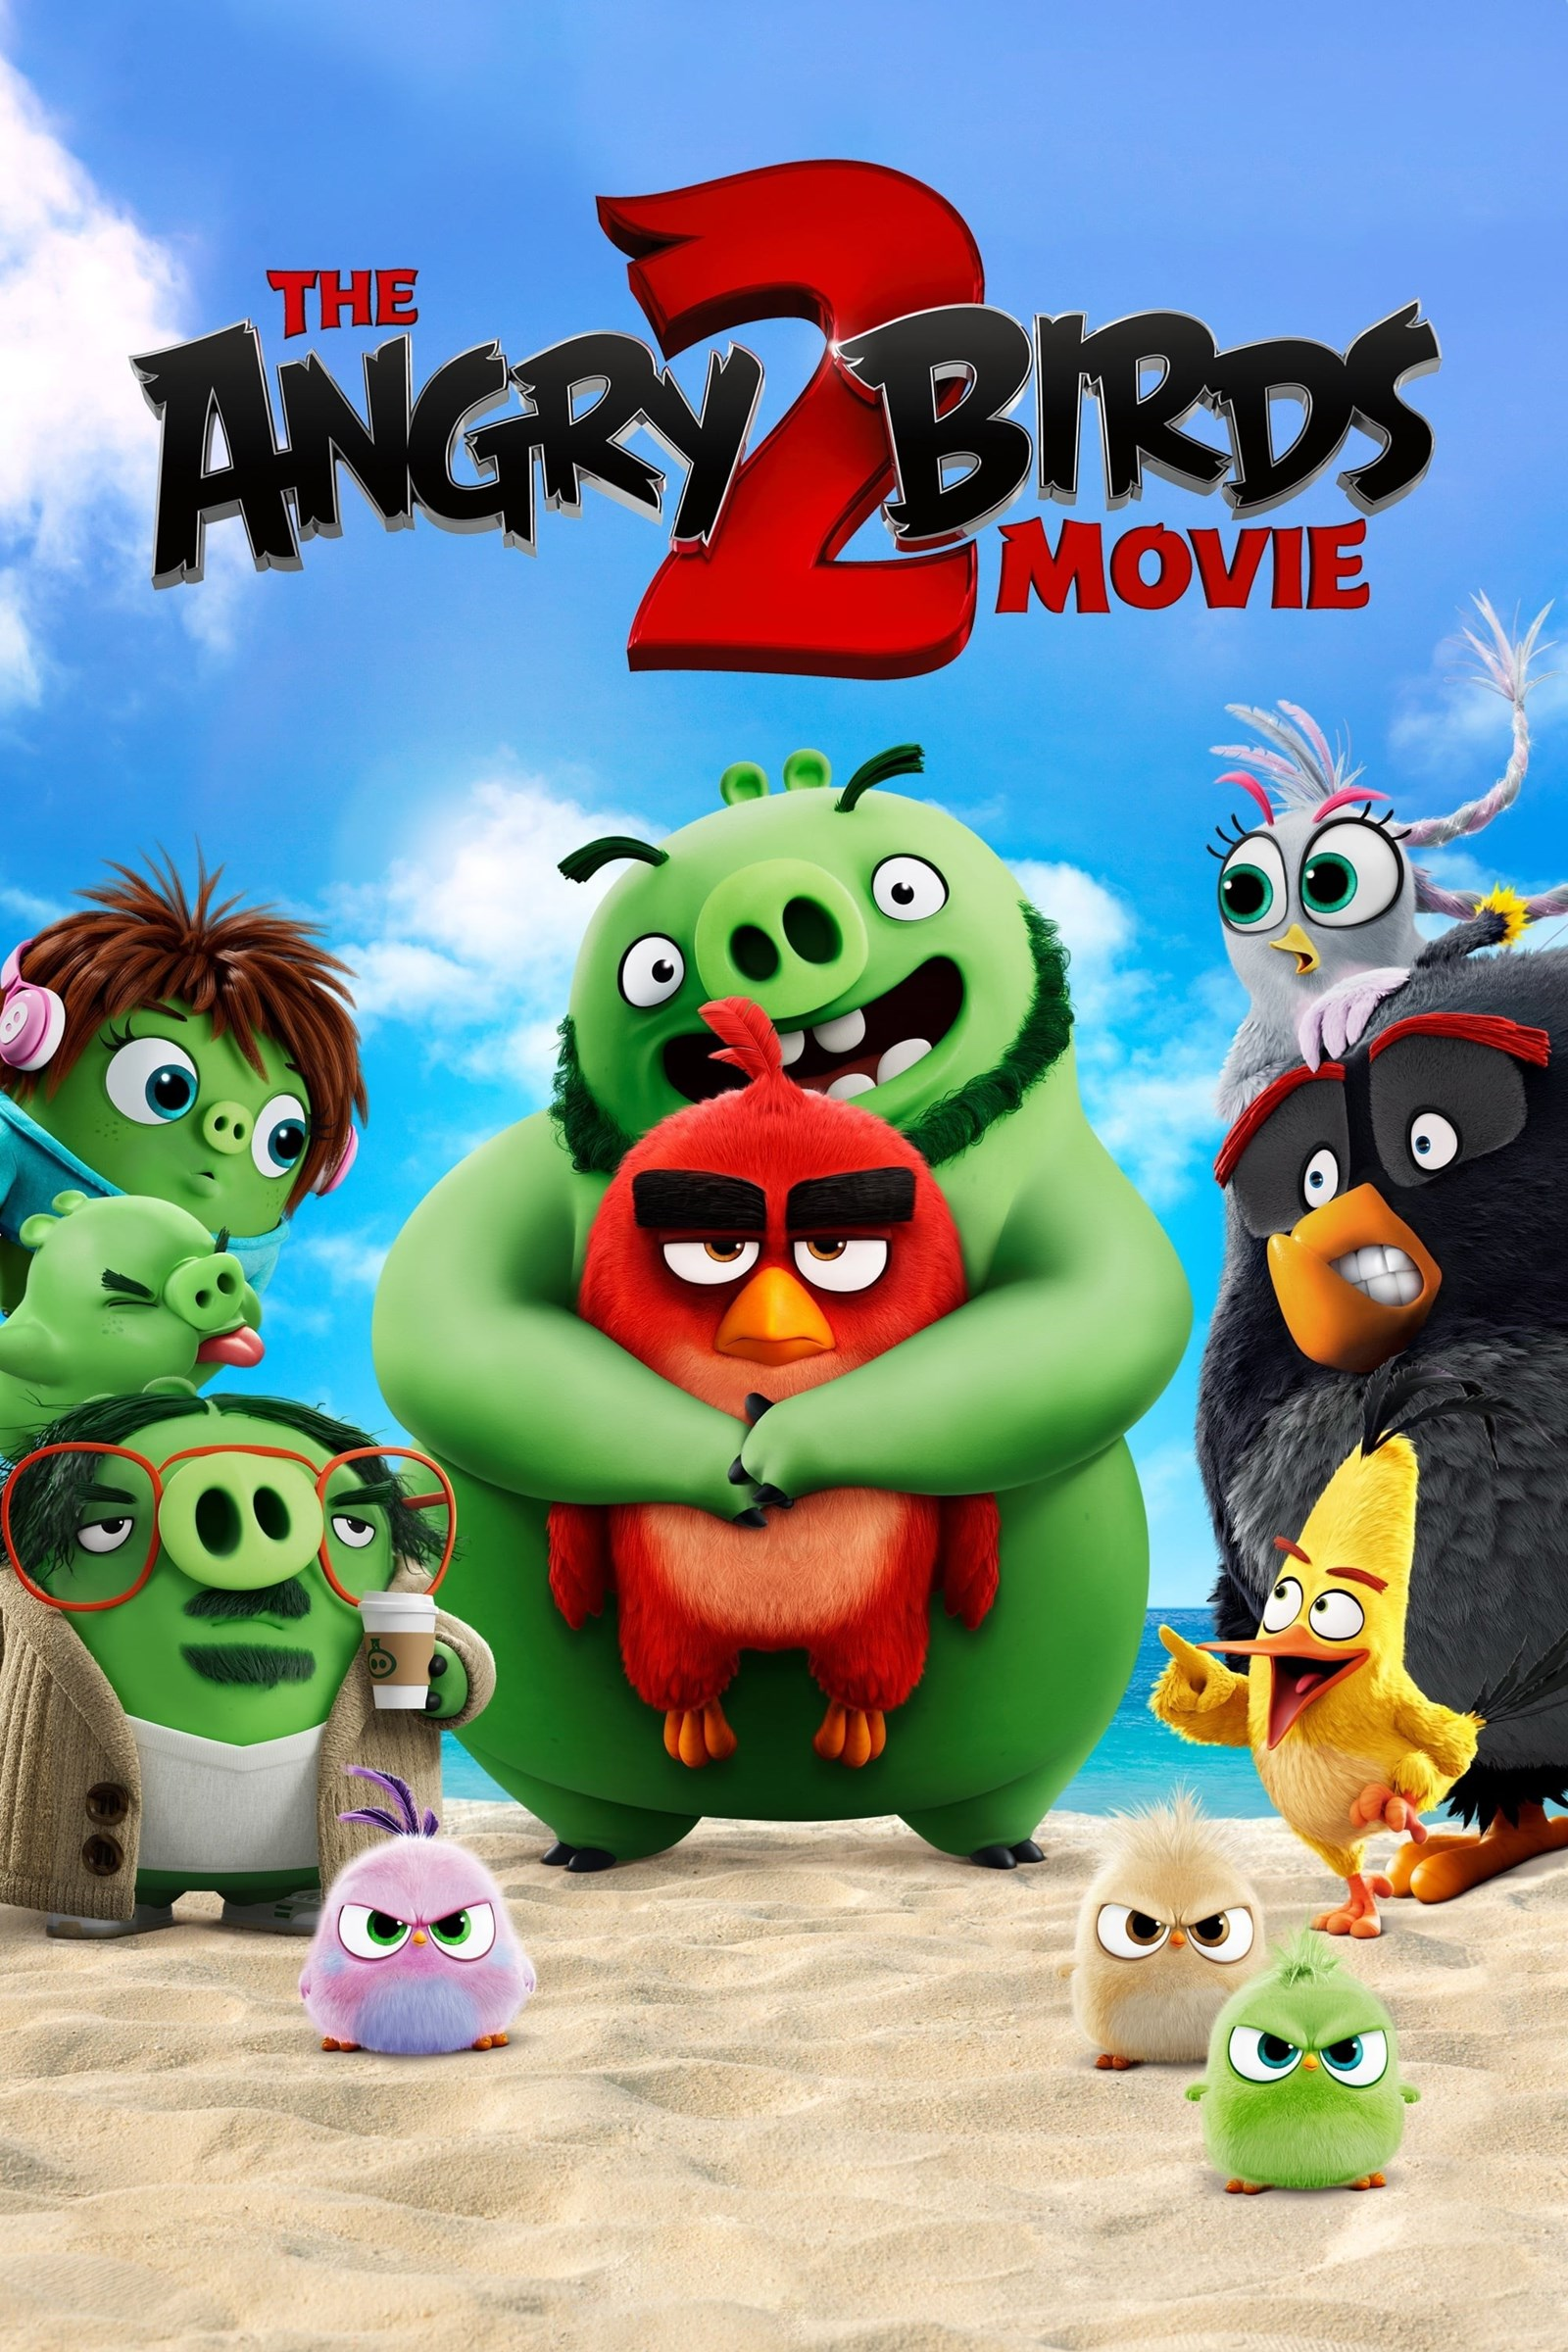 the-angry-birds-movie-2.165843